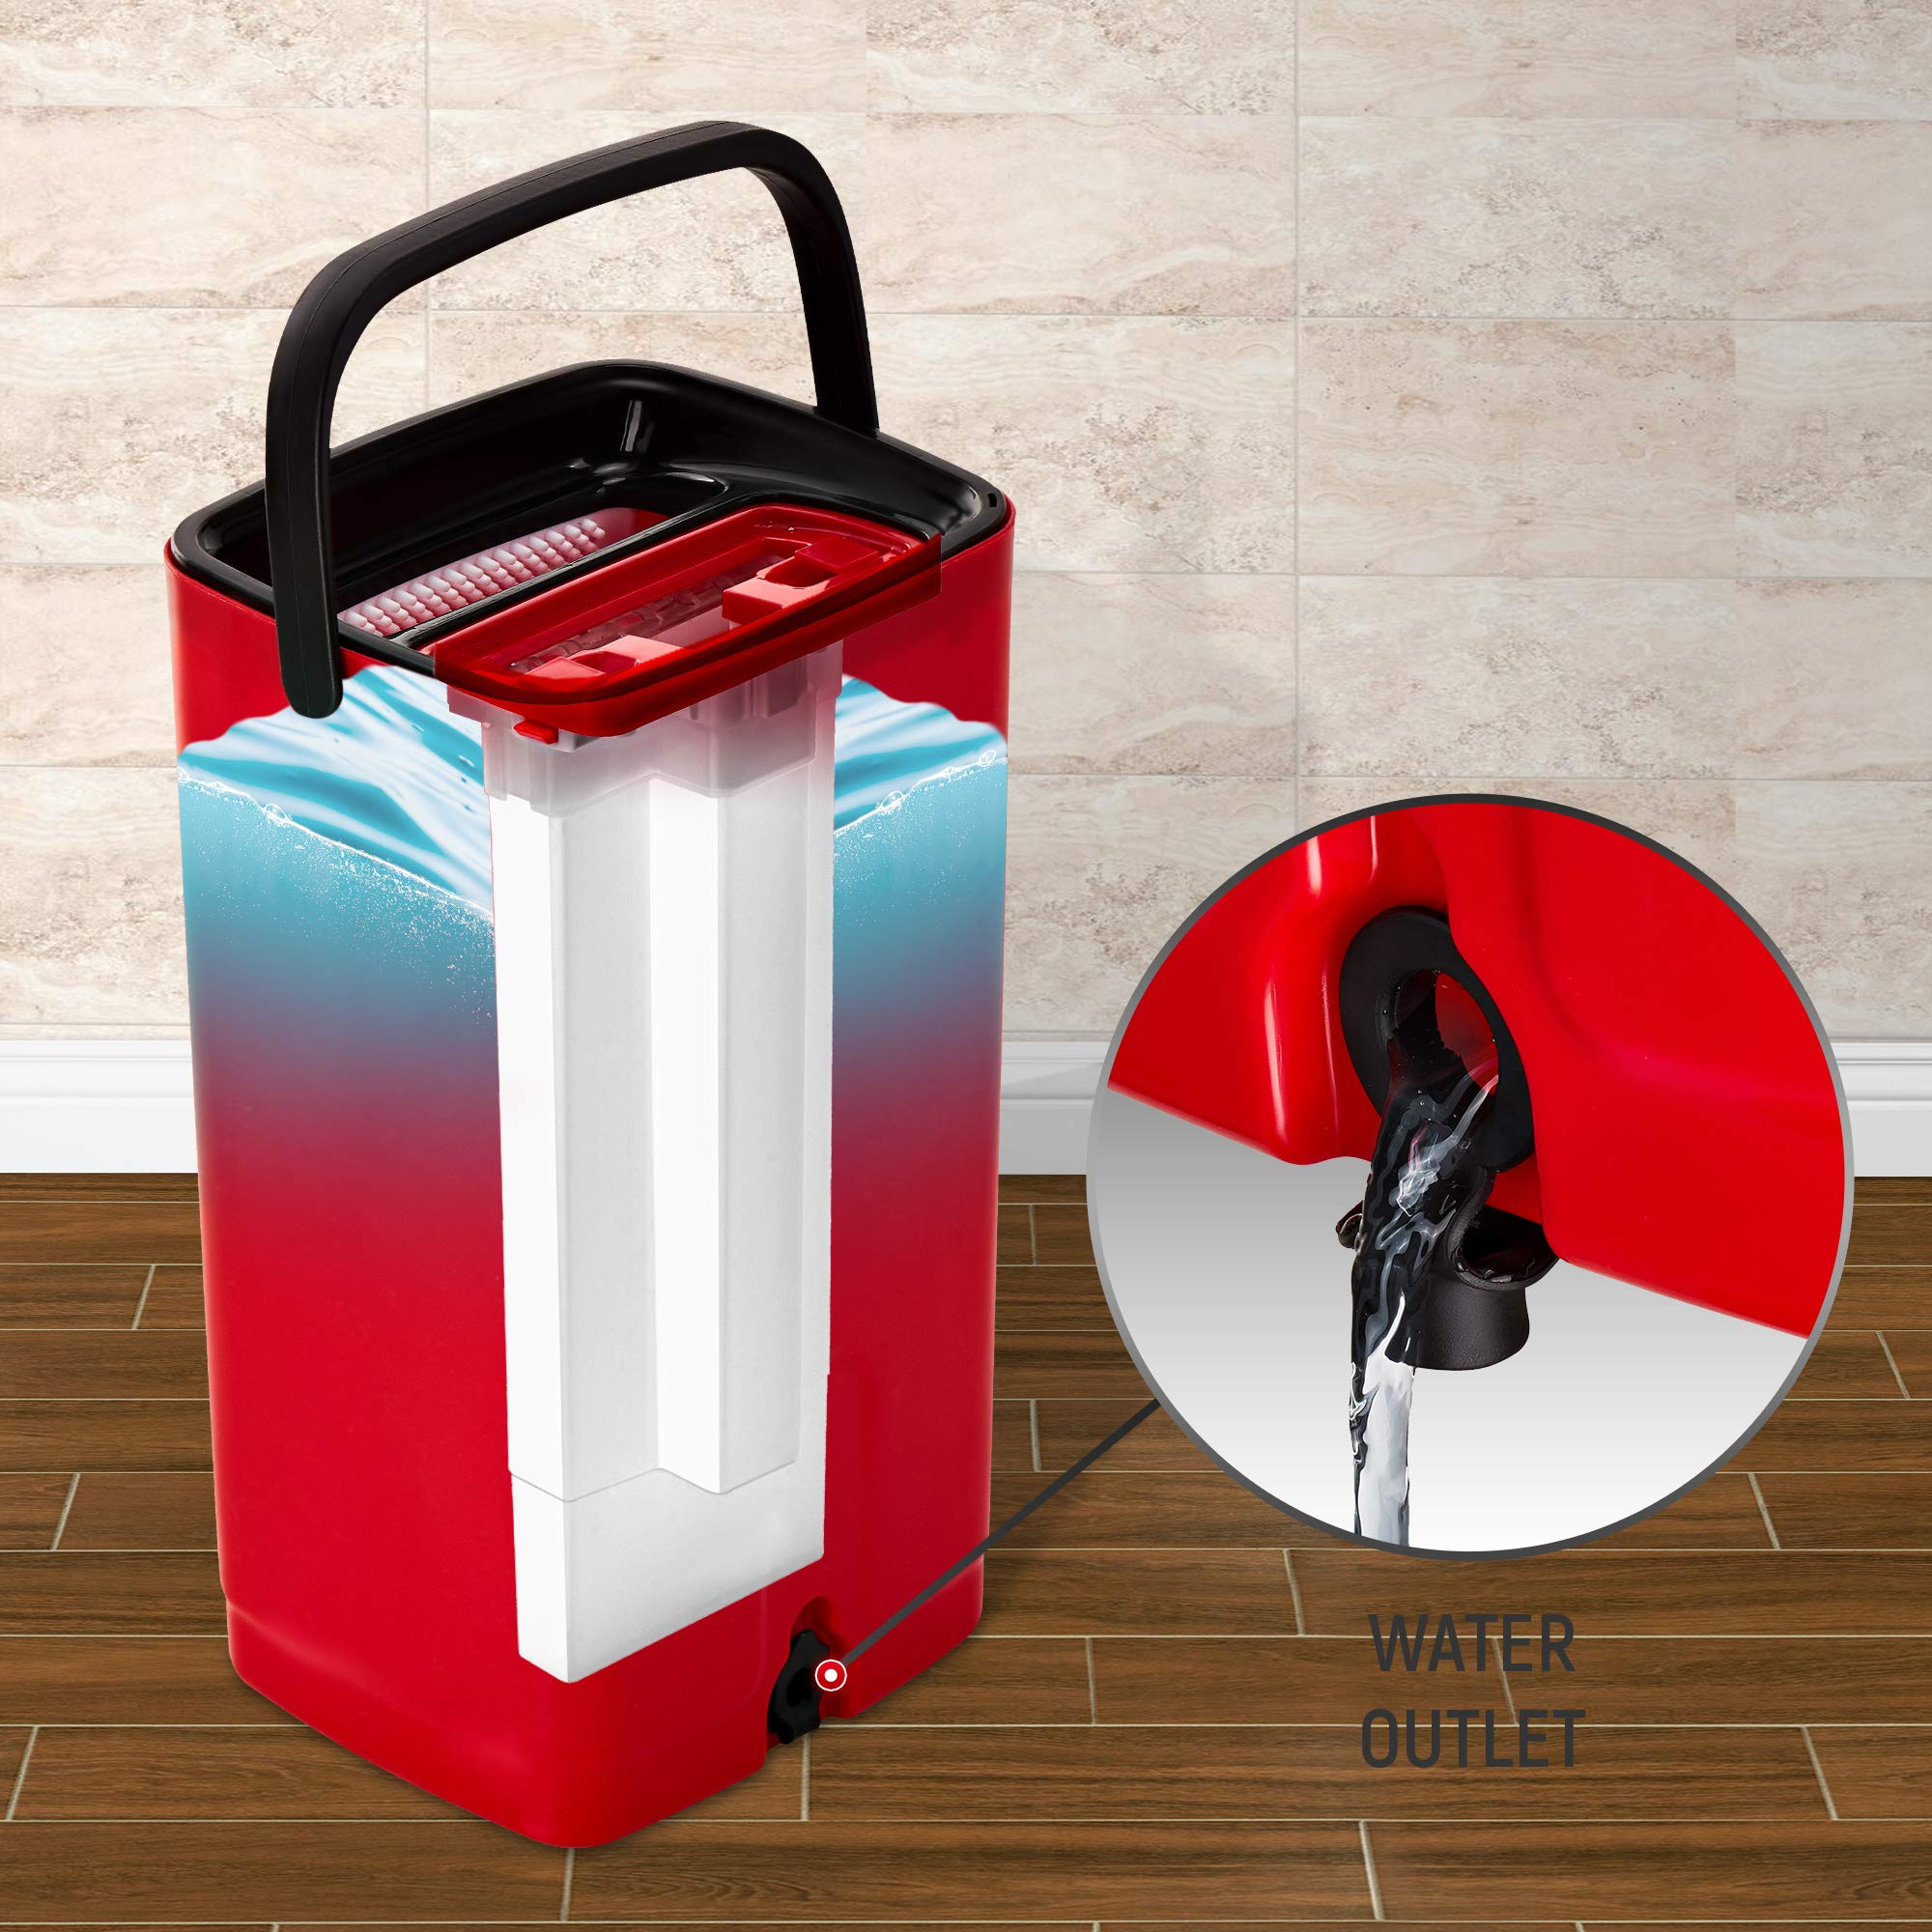 E-Day Smart Flat Mop Bucket with Wringer for Home Kitchen Floor Cleaning - Microfiber Mop System with Bucket and 2 Washable Mop Pads - Dry or Wet Floor Mop Set with Self-Cleaning System - Red by E-Day Smart (Image #5)